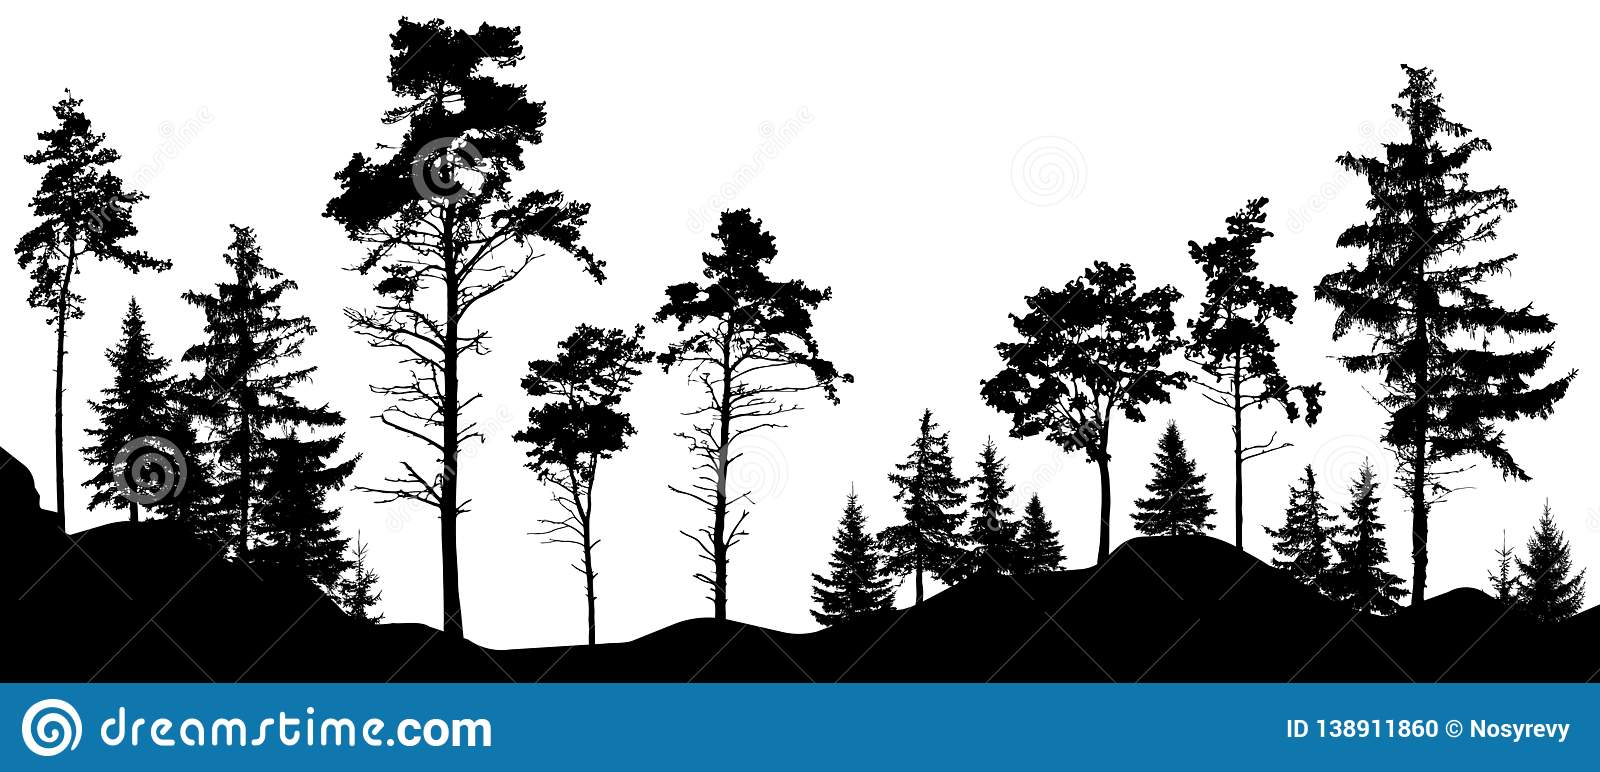 Forest silhouette trees. Vector illustration. Trees isolated from each other, free-standing